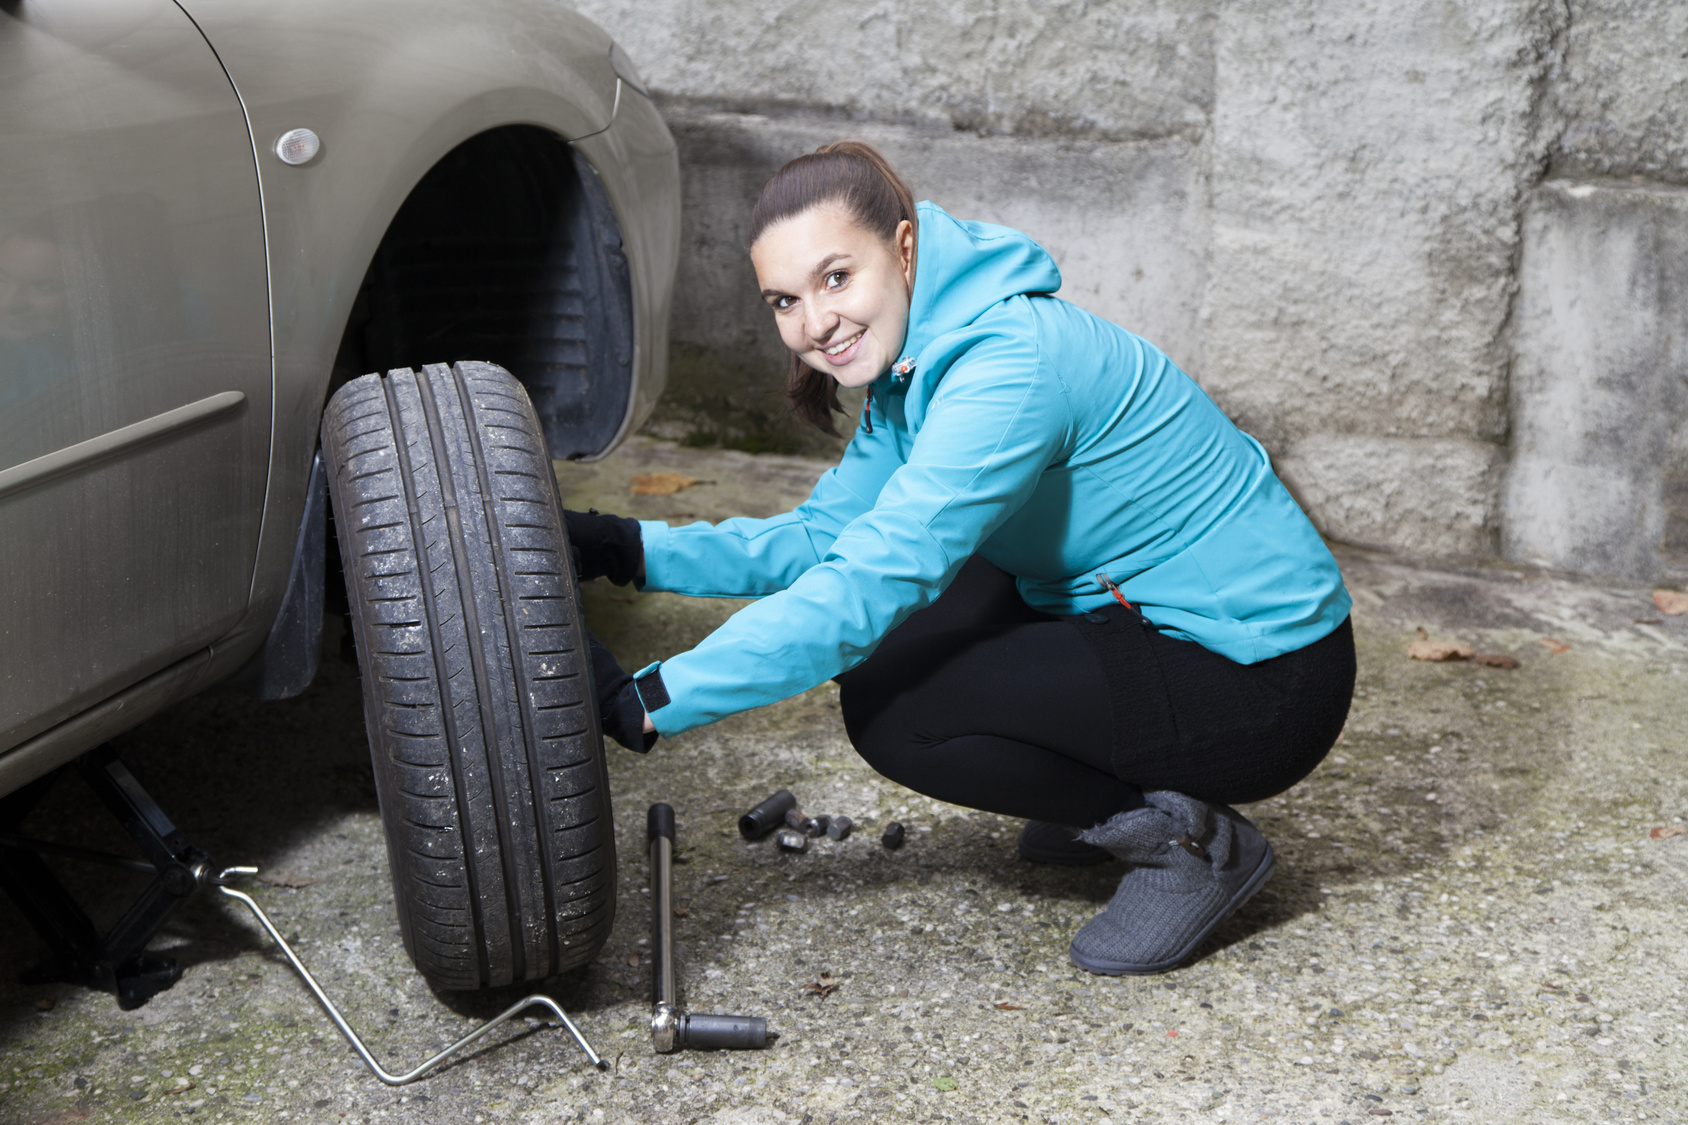 5 Things Every Woman Should Know About Their Car